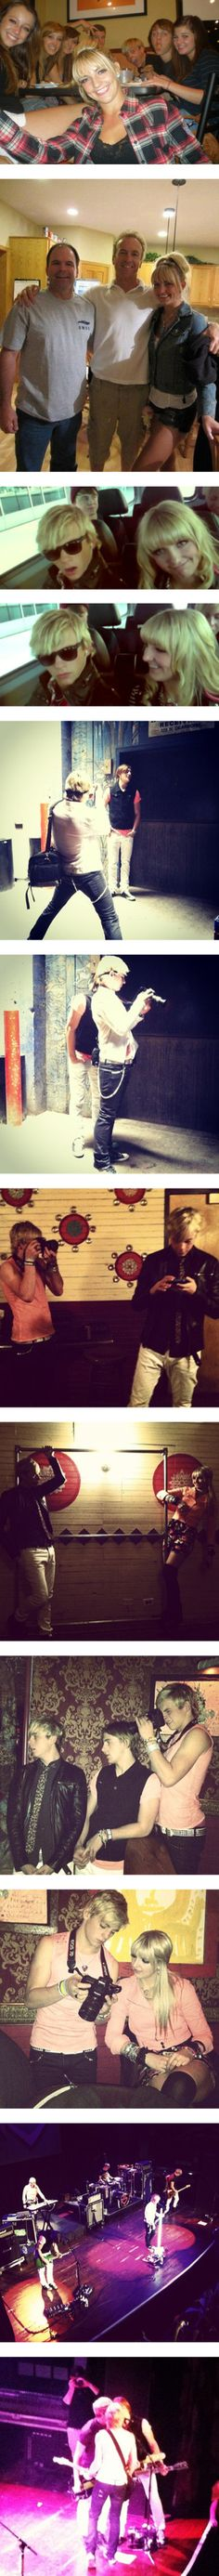 """""""R5rocks 15"""" by jordybell ❤ liked on Polyvore"""